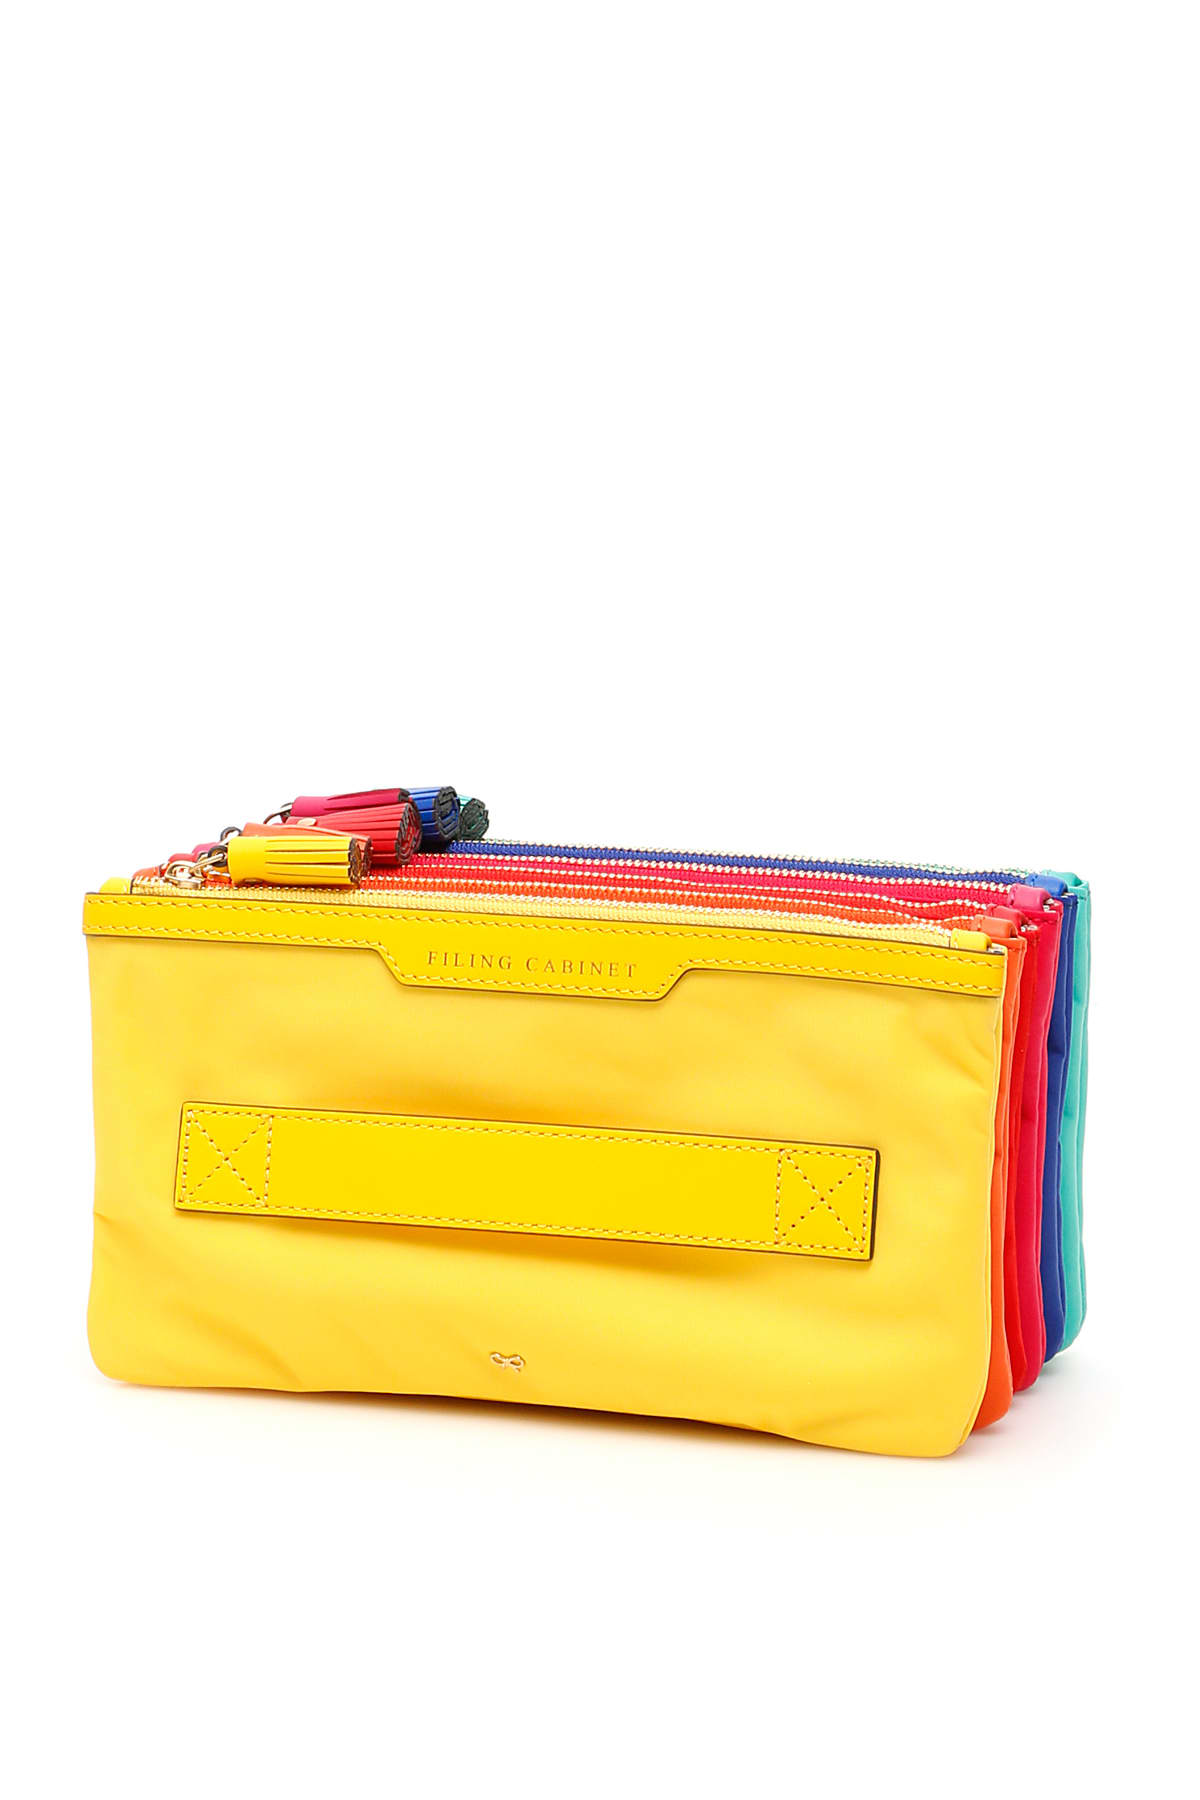 Anya Hindmarch Filing Cabinet Pouch